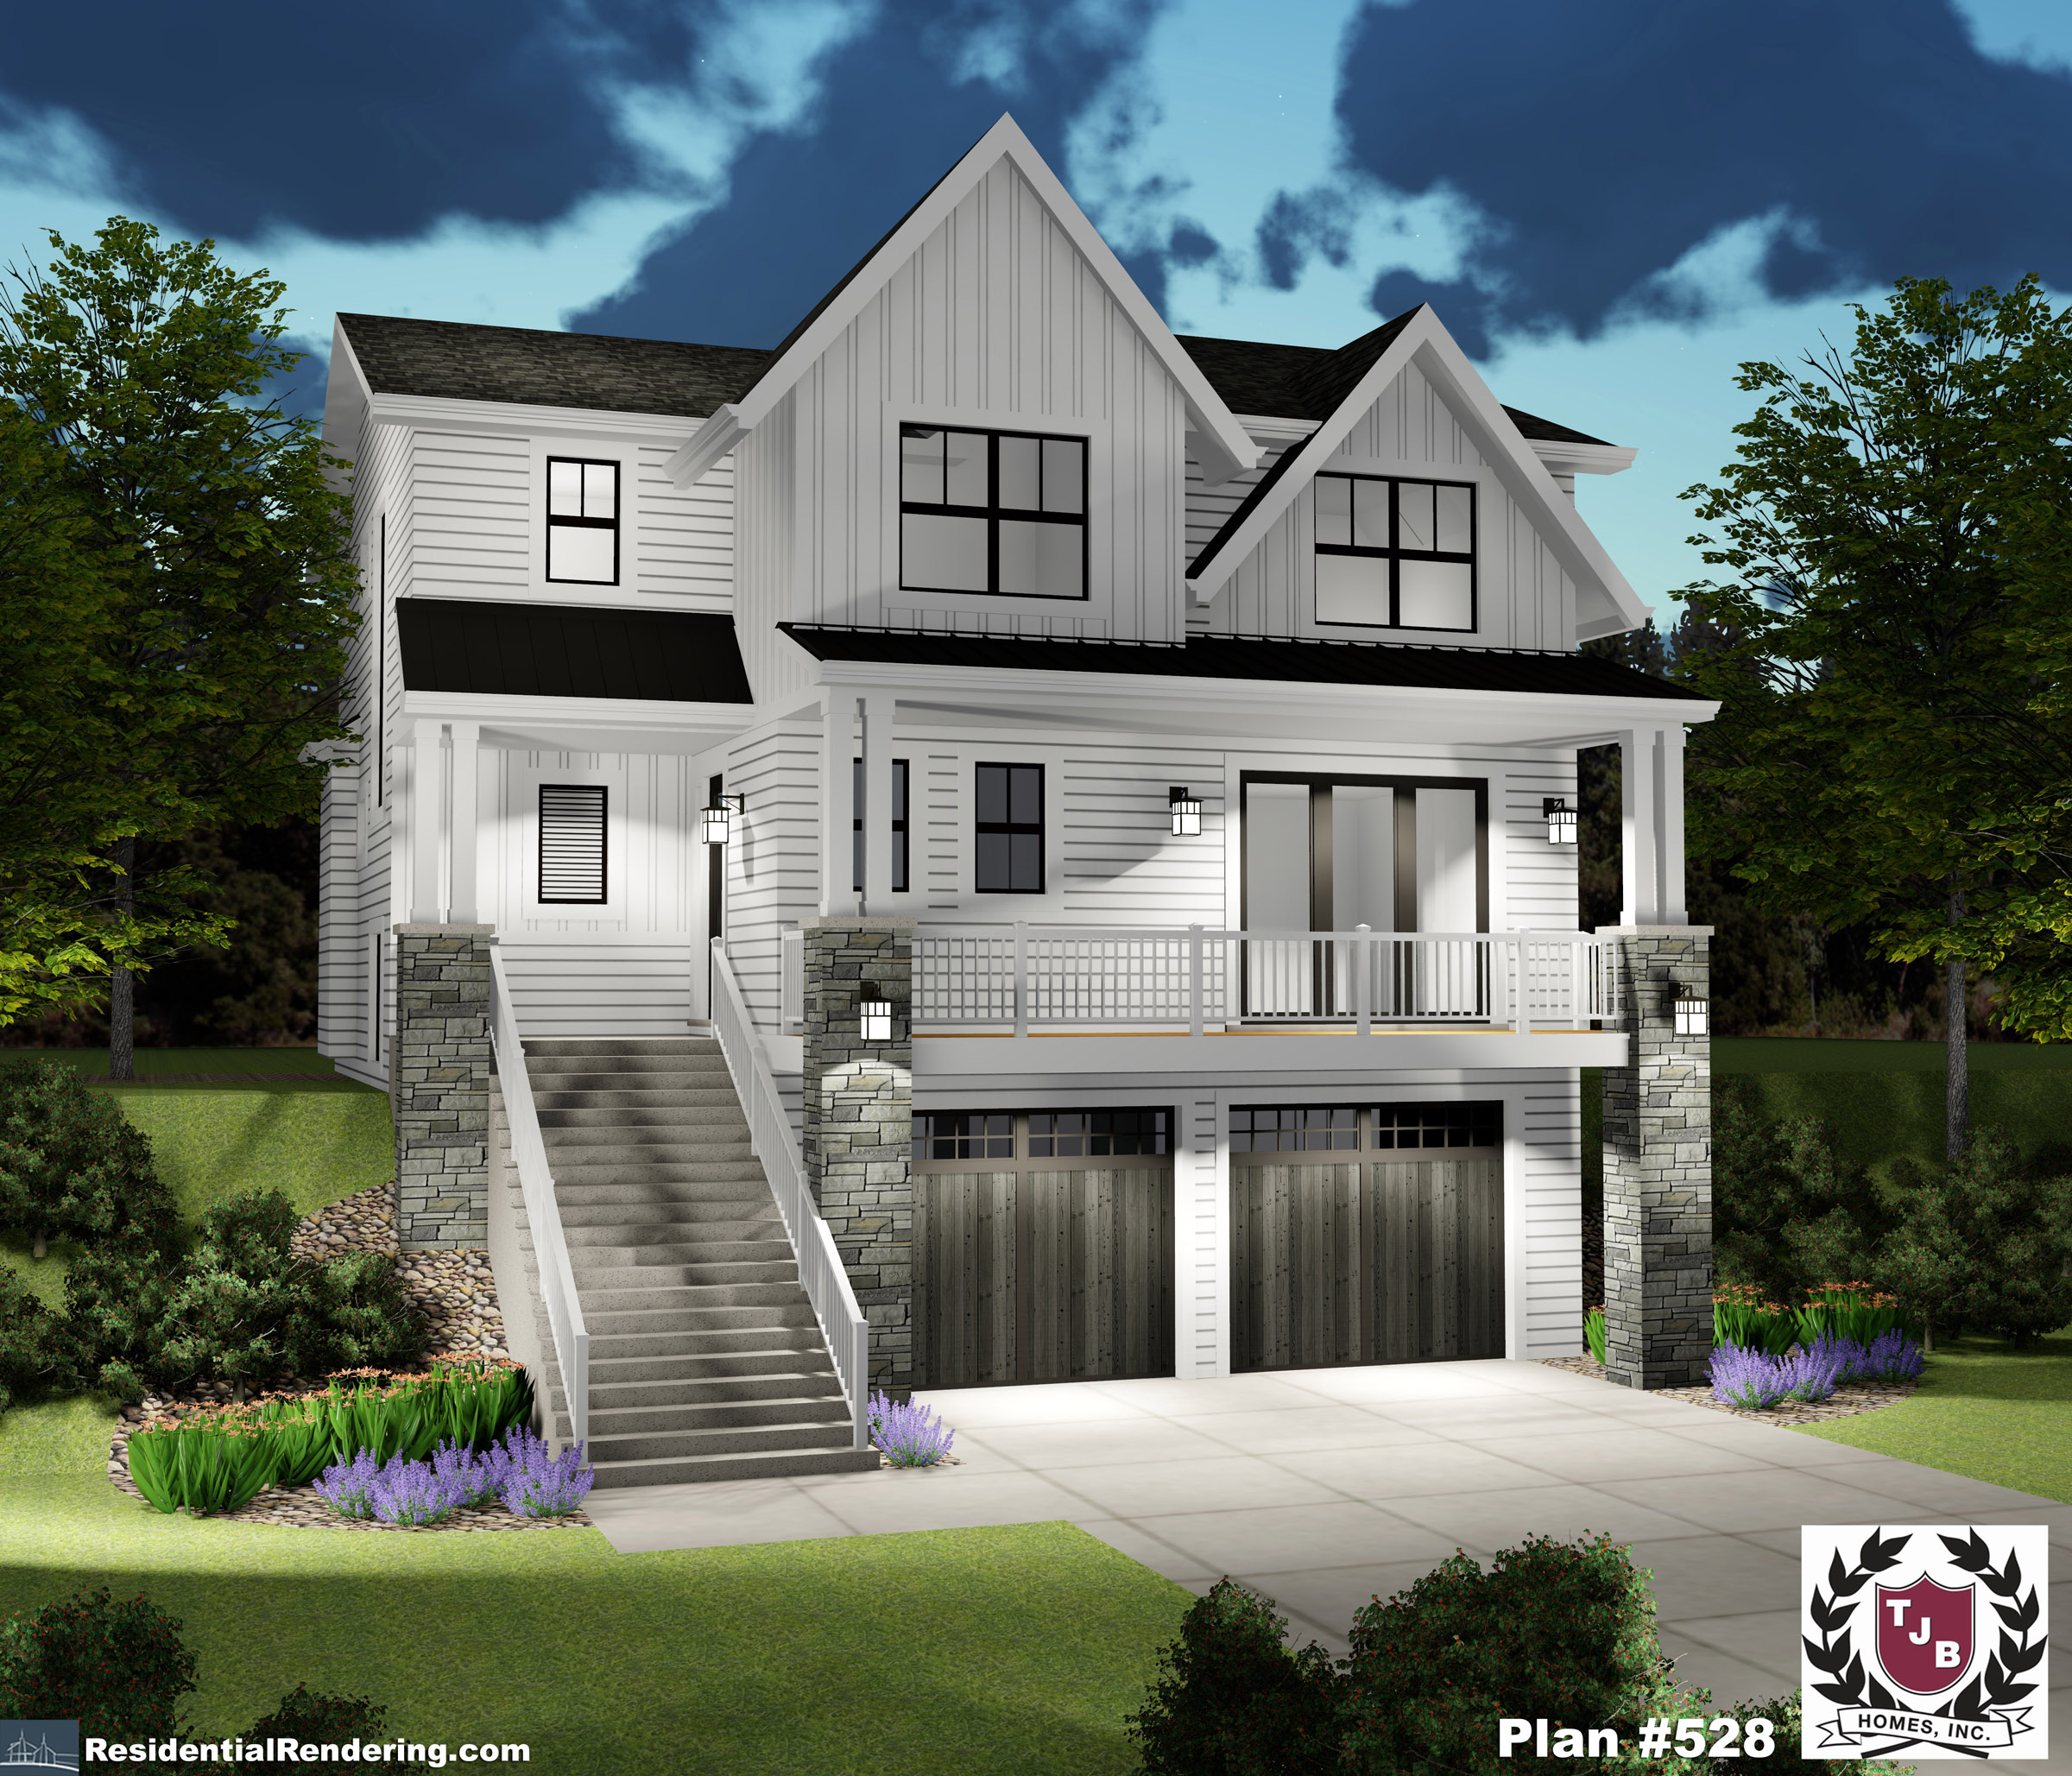 Luxury Home Plan with 5 Bedrooms, 5 Bathrooms, Large Sunroom ... on